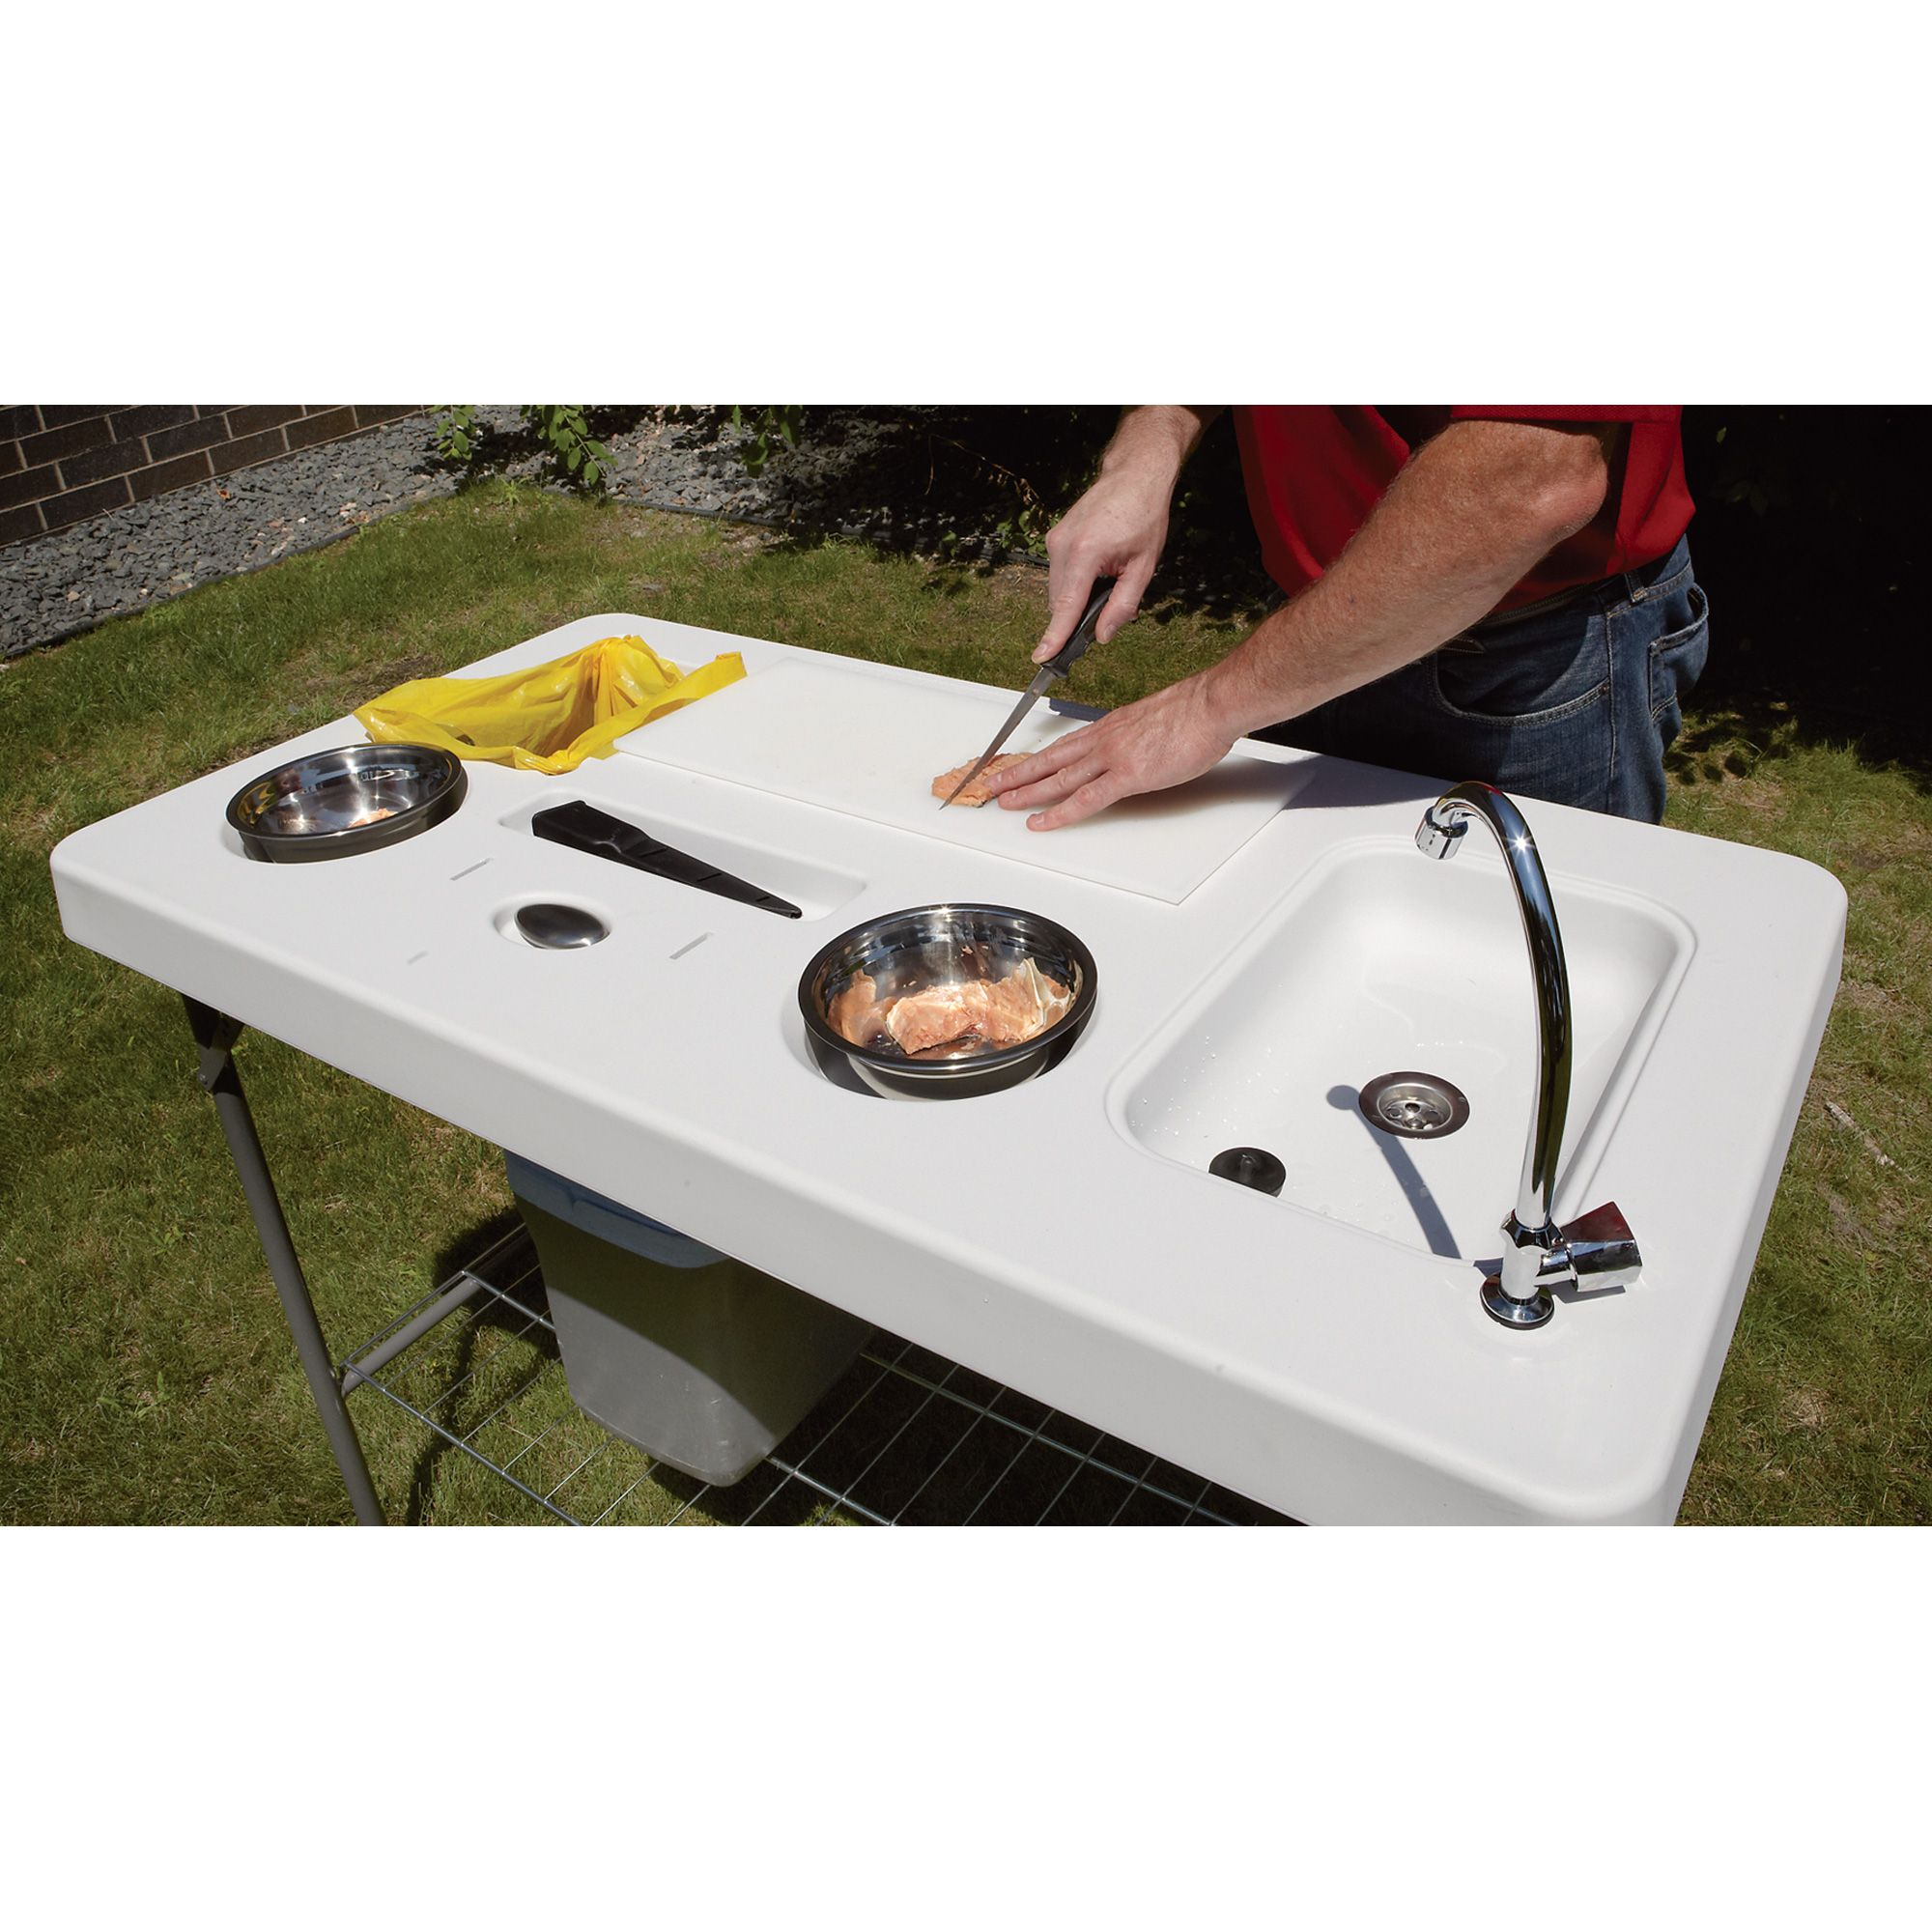 Coleman fish cleaning table re camping sink - Portable Camp Fish Cleaning Table With Faucet Deluxe